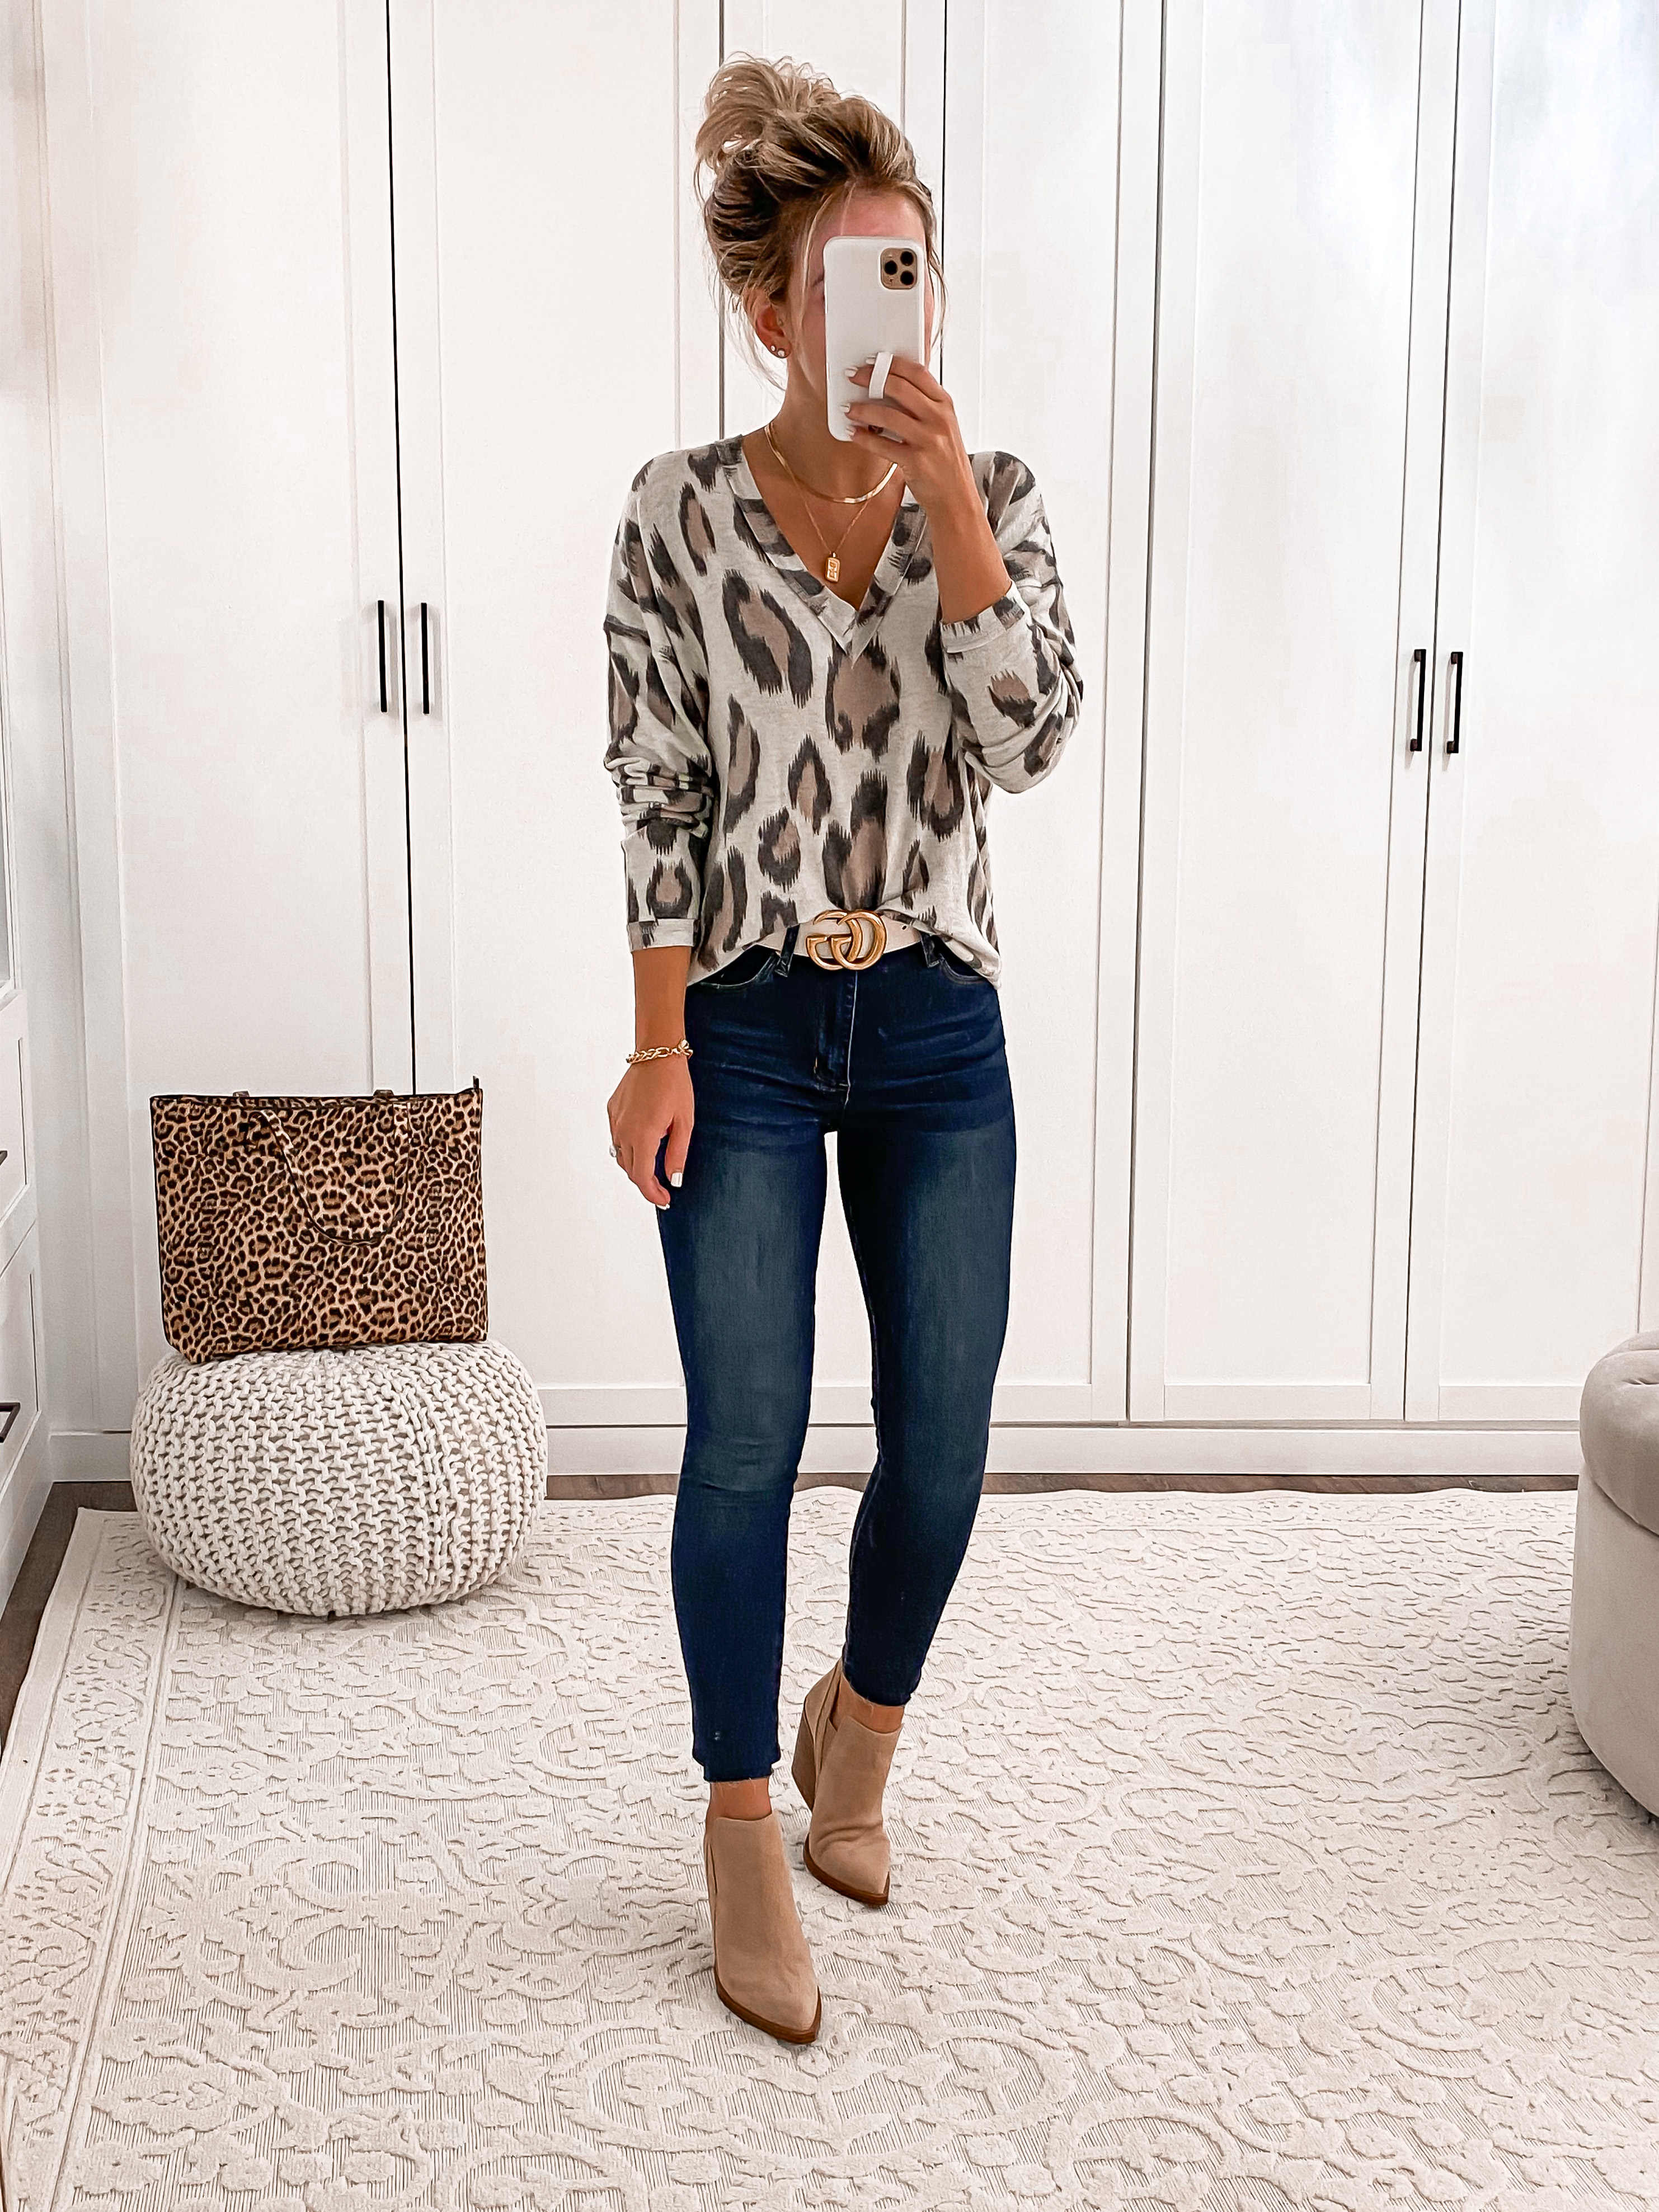 Nordstrom Anniversary Sale 2020 Nsale Laura Beverlin Fall outfit ideas18